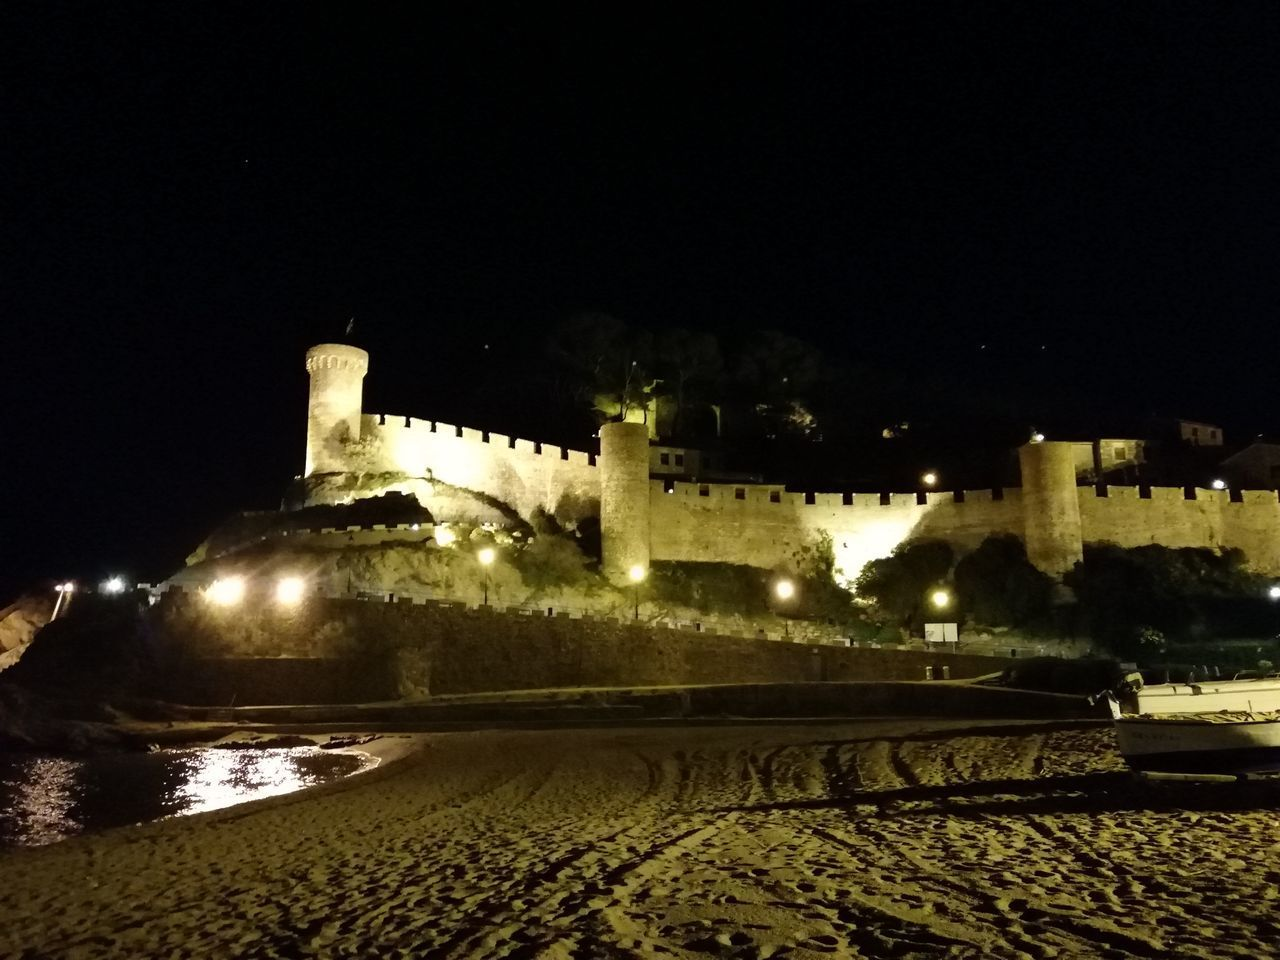 night, architecture, building exterior, illuminated, built structure, history, the past, nature, building, copy space, sky, no people, city, fort, water, ancient, land, outdoors, old